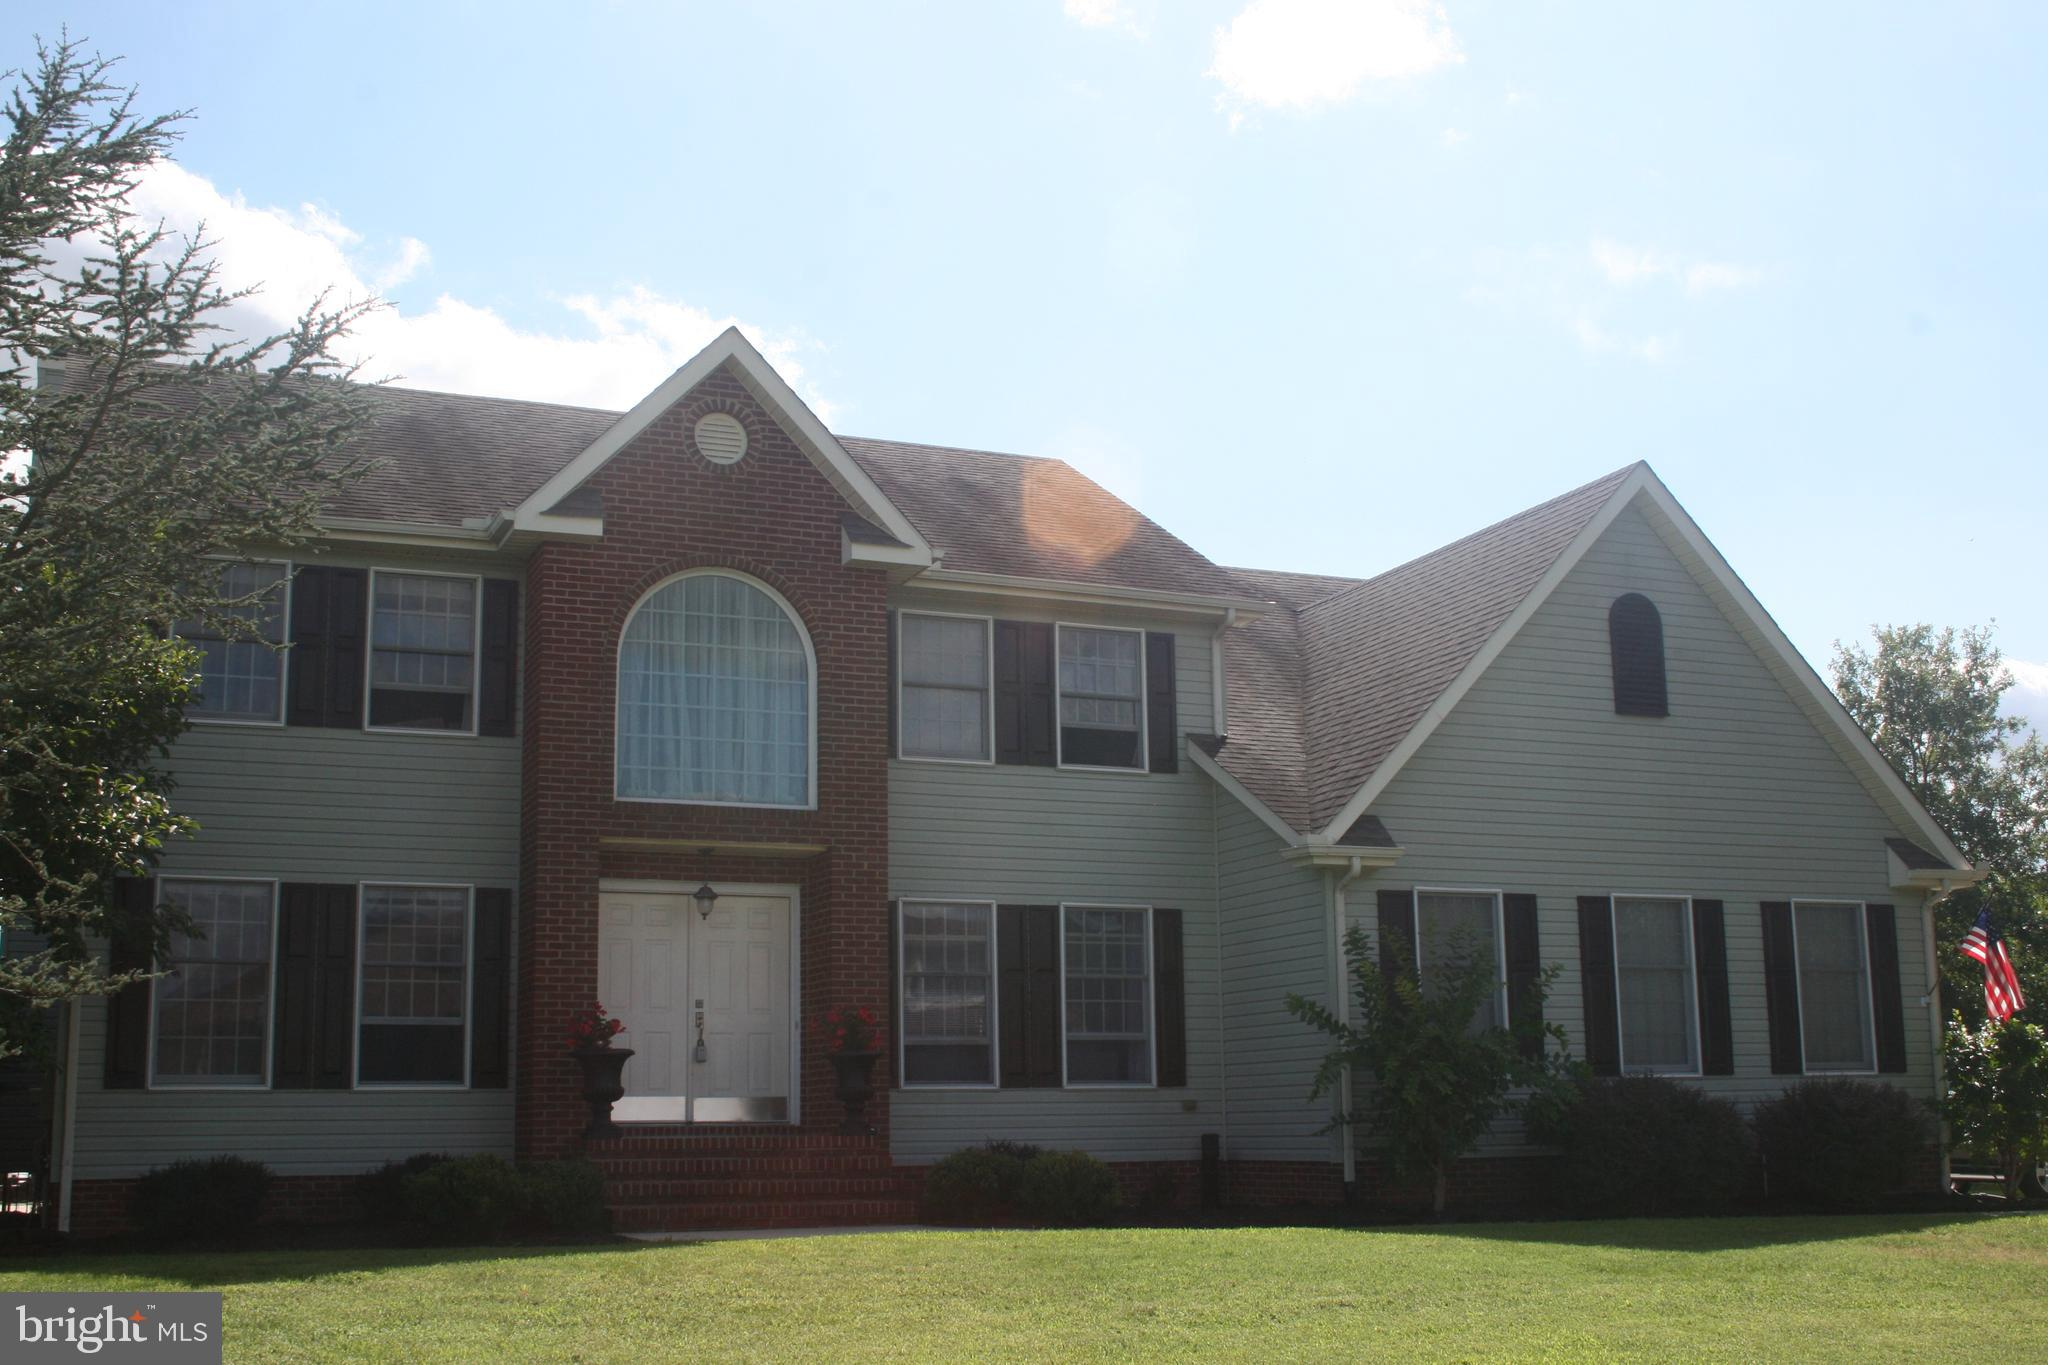 MOTIVATED SELLER!!  A rare opportunity to own a home in the desirable Windswept Development. This beautiful well maintained home features 4 bedrooms and 2 ½ baths in the Caesar Rodney School District. As you enter the double front doors you are greeted by a very nice size foyer with upgraded finishes. The formal Living room and Dining room are perfect for entertaining guests. The large Eat-in kitchen offers an oversized island, stainless steel appliances, gas cooking, granite counter tops, pantry and hardwood flooring. The great room has a beautiful stone wood burning fireplace with sliding glass doors leading to a 14 x 16 screened in porch overlooking the backyard oasis with an inground salt water pool. The ½ bath and large laundry room complete the first floor. Upstairs on the second floor you will find your escape getaway in the Master Suite. Large Bedroom with 2 large walk-in closets. The master bath is also a perfect size with dual vanities and soaking tub with separate shower. The other three bedrooms upstairs are a great size, with ample closet space. Schedule your tour today.